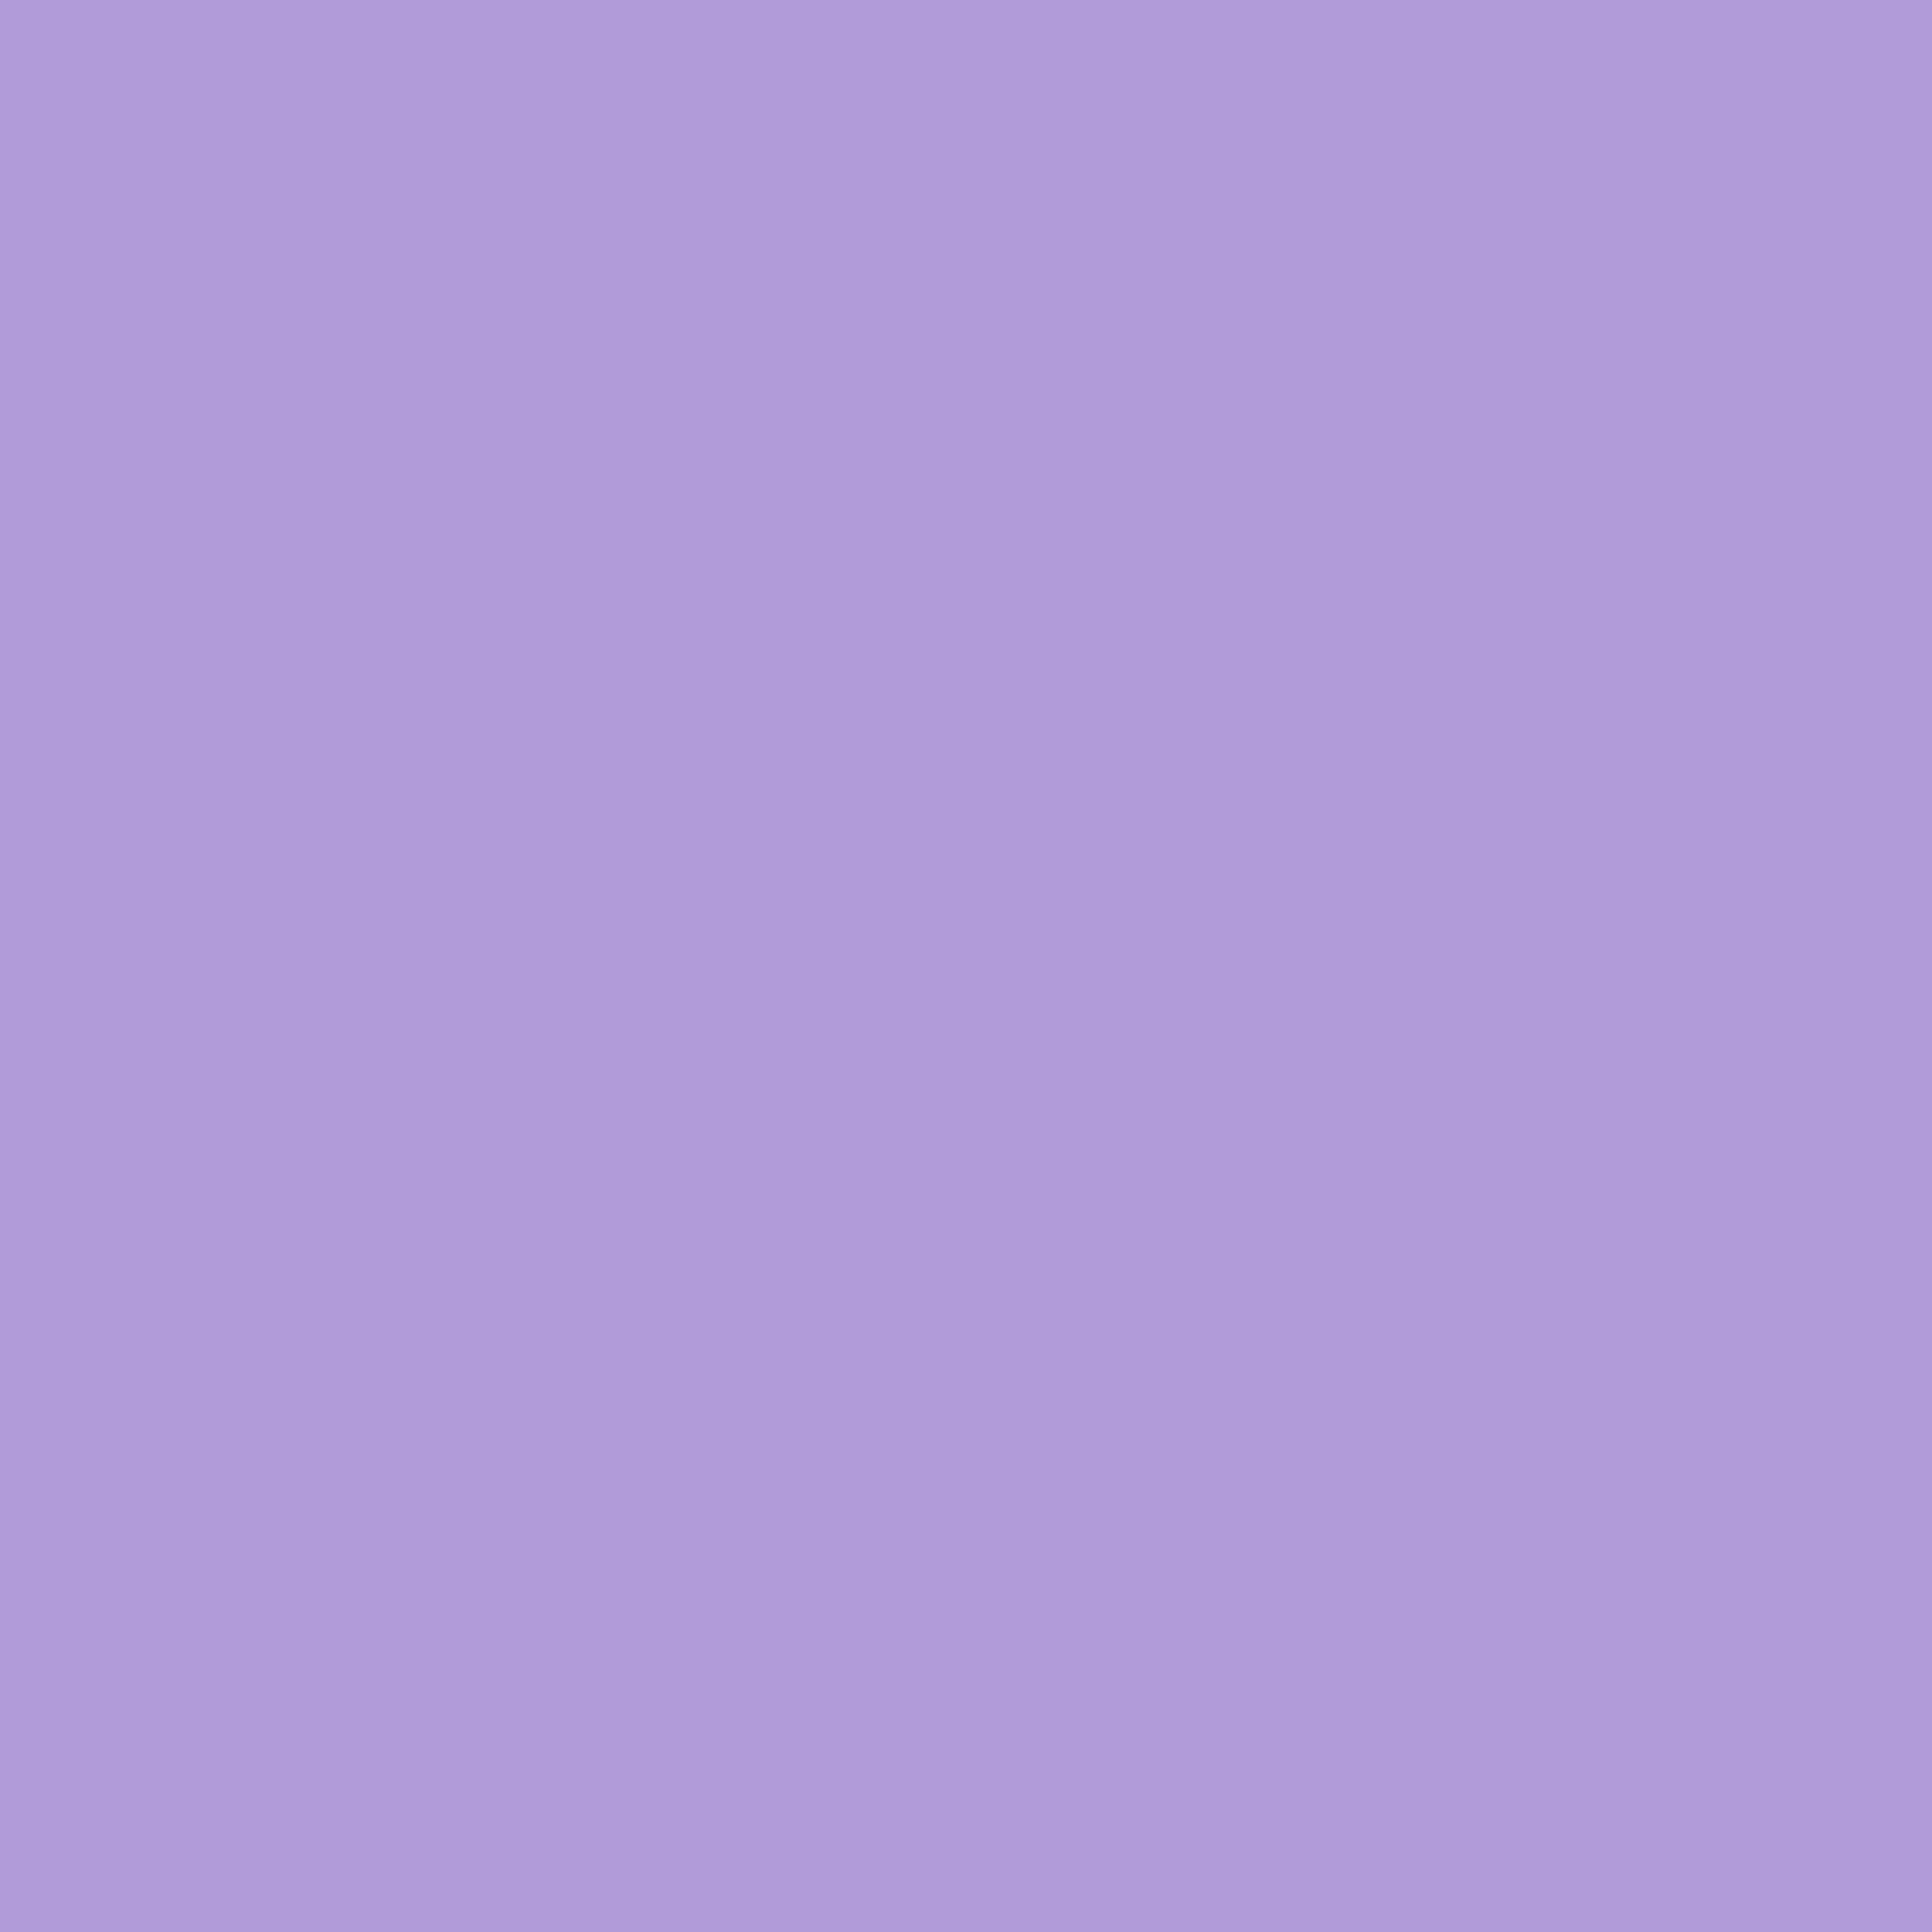 2048x2048 Light Pastel Purple Solid Color Background